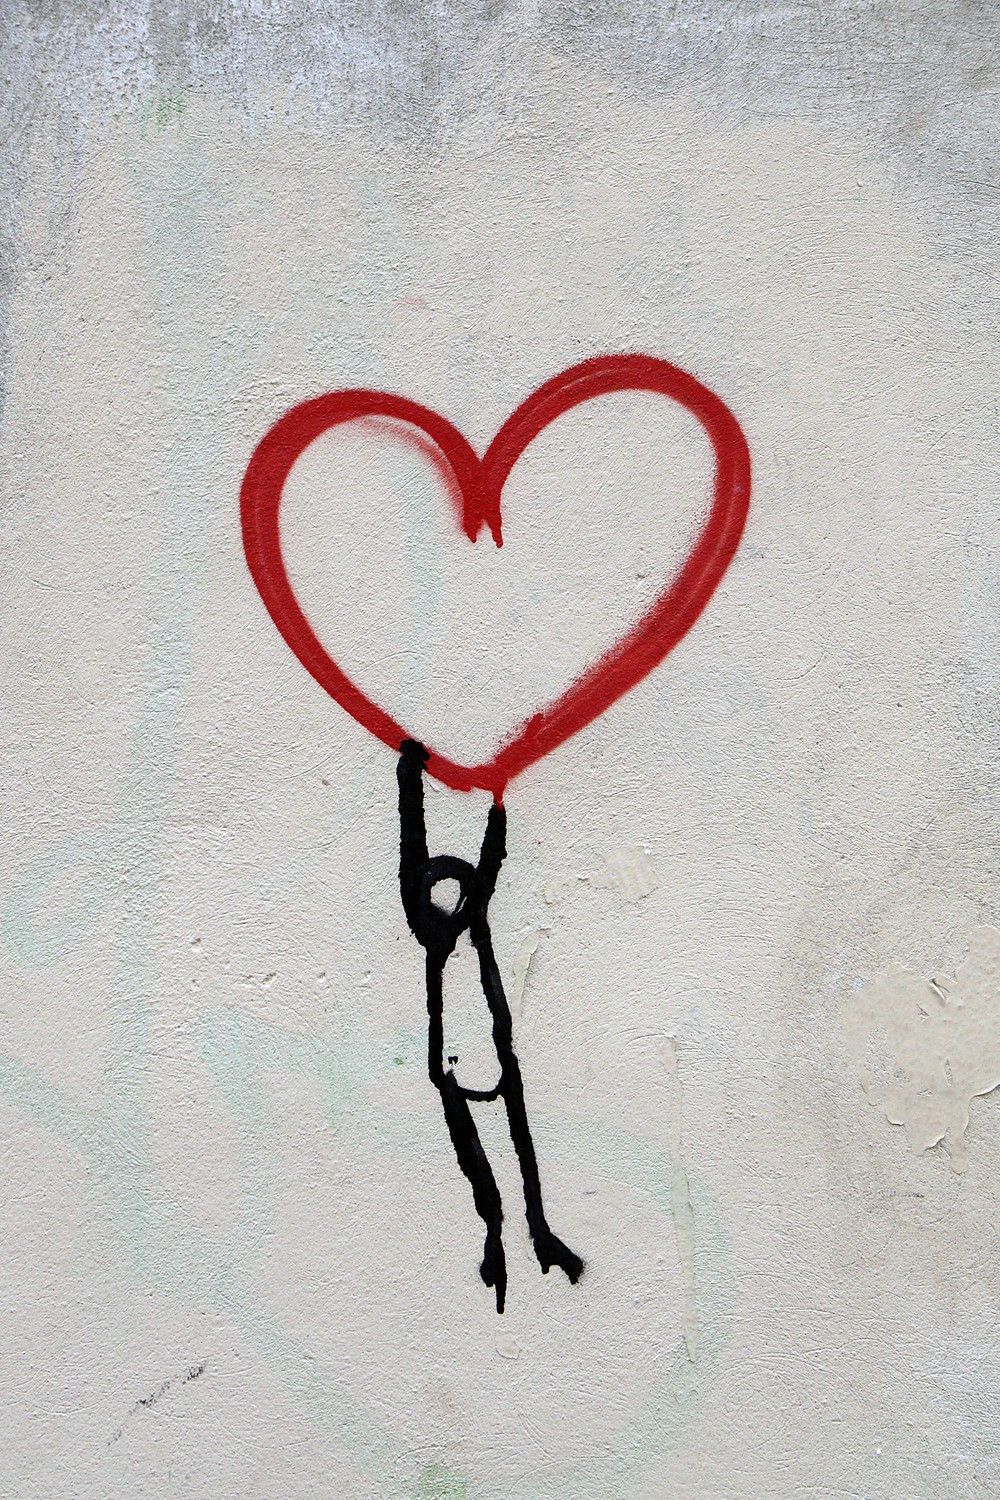 Stick figure hanging from heart drawing